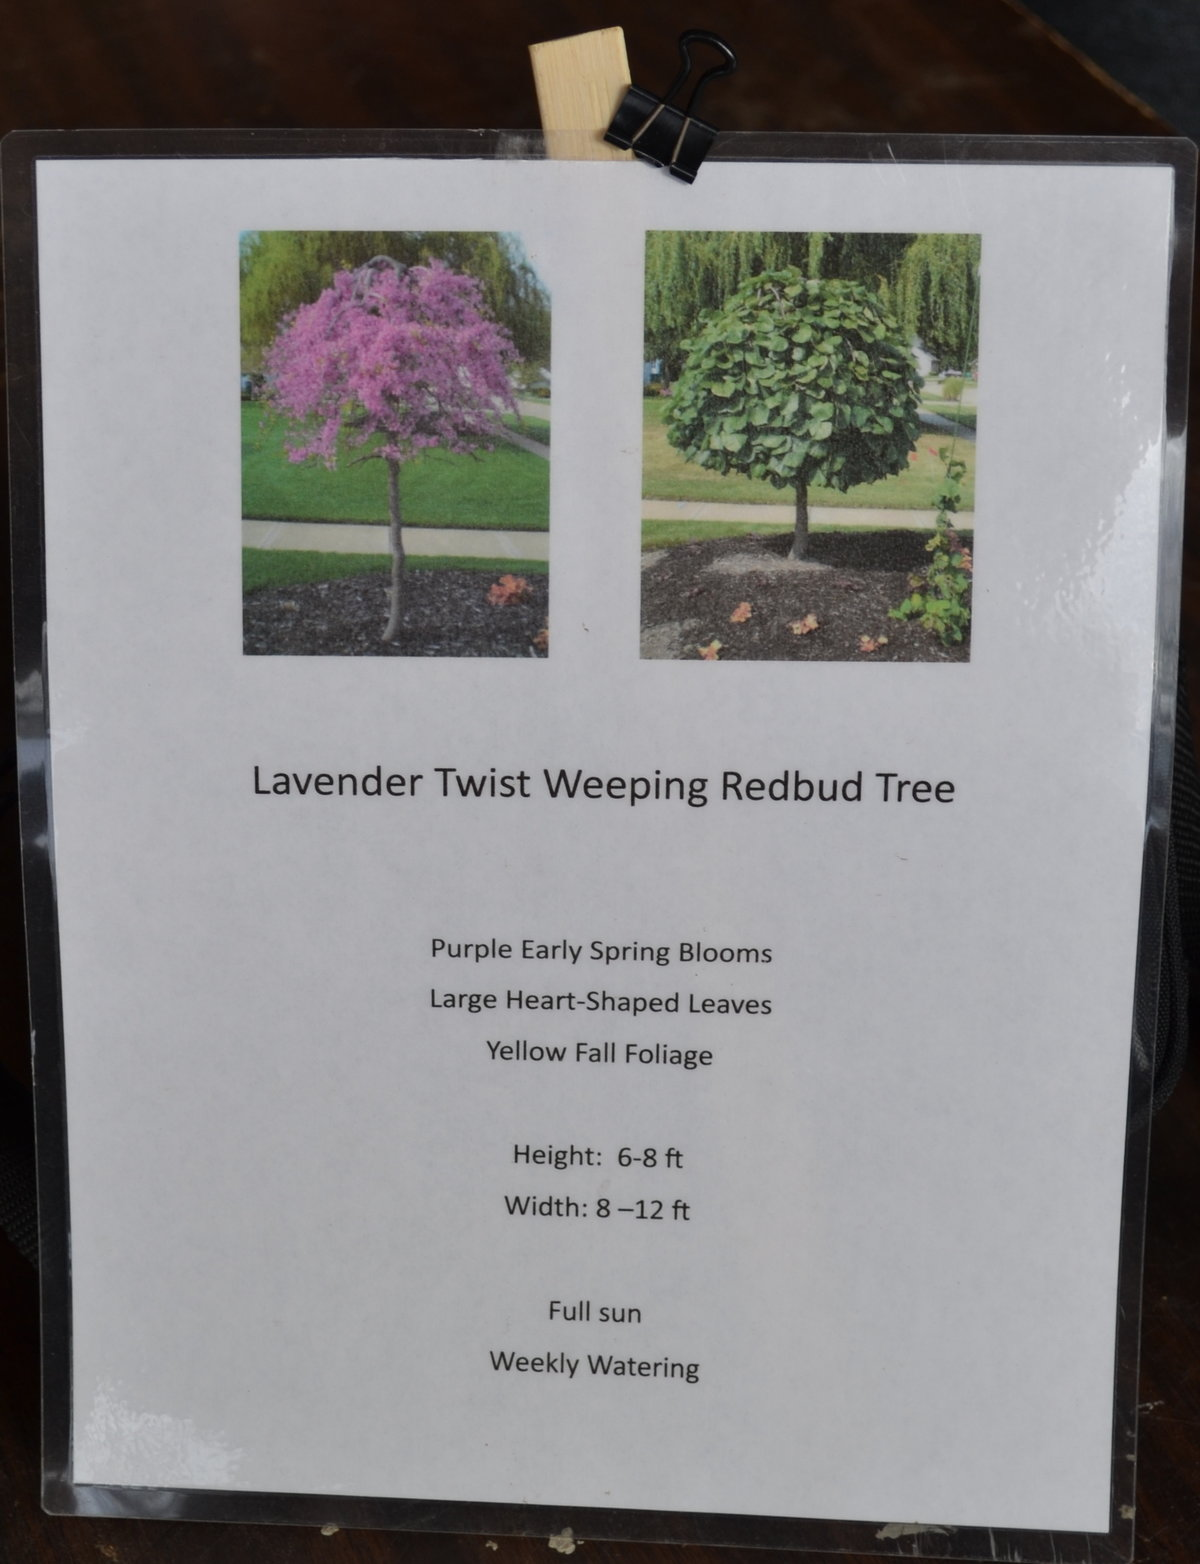 Point of sale sign for the Lavender Twist Redbud Tree.